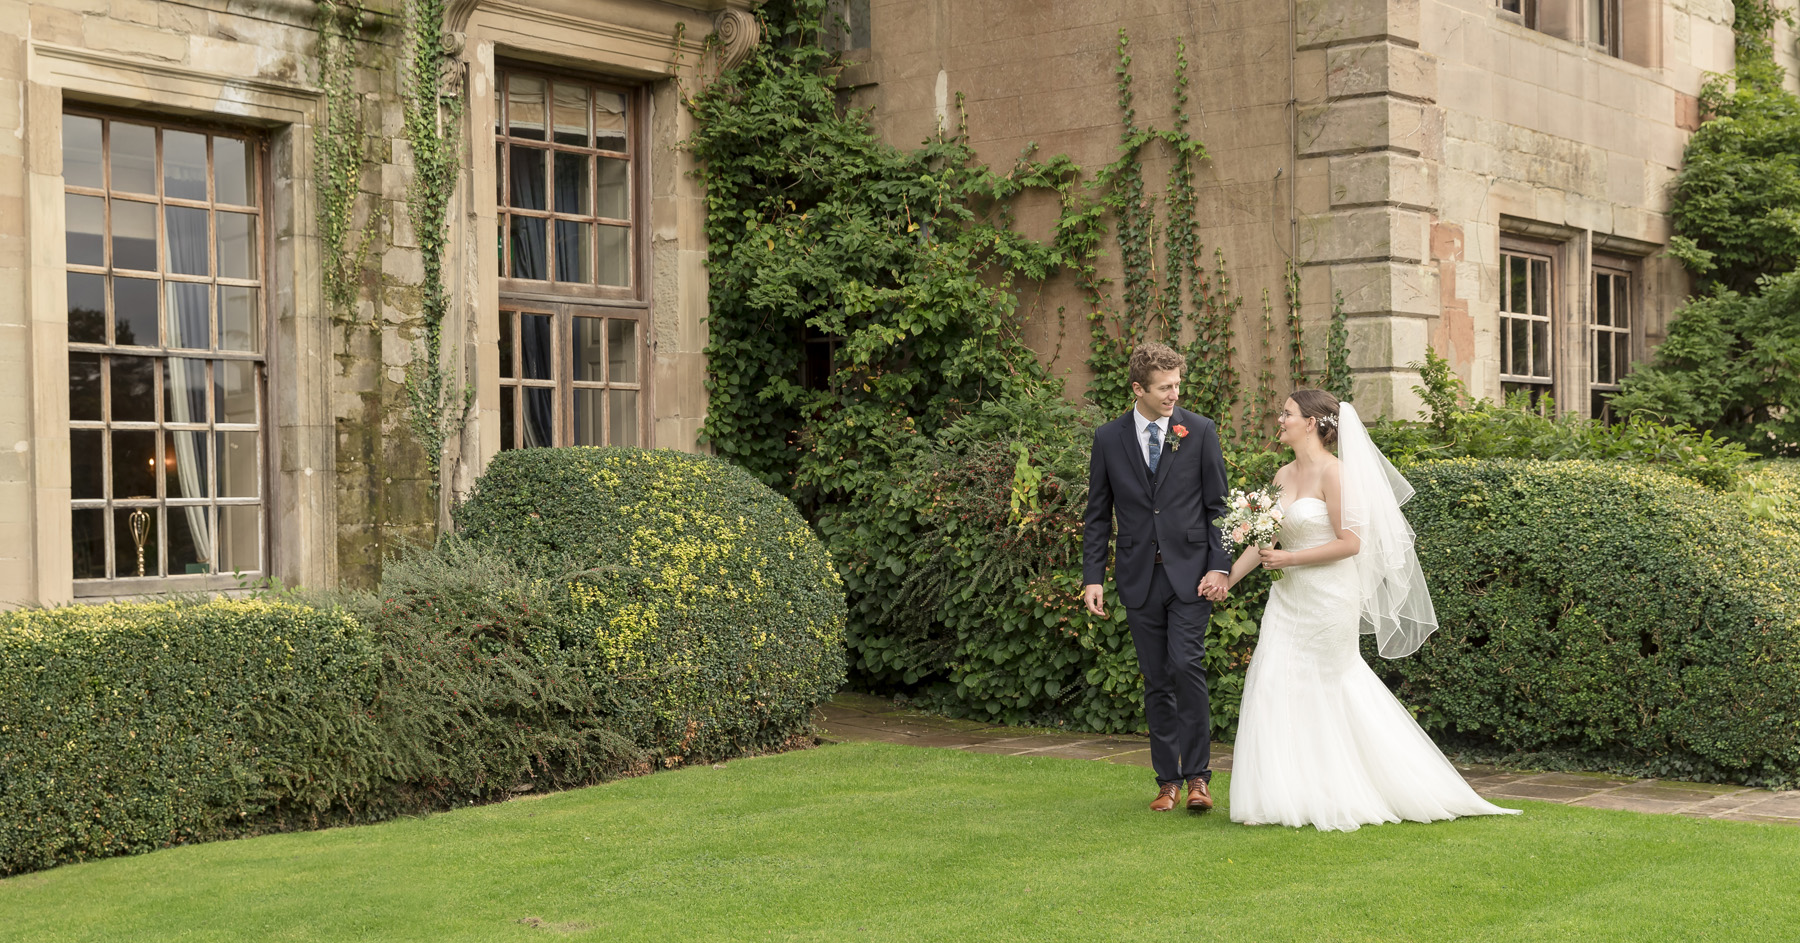 reportage wedding image of Bride and Groom walking hand in hand on the west terrace grass at Coombe Abbey